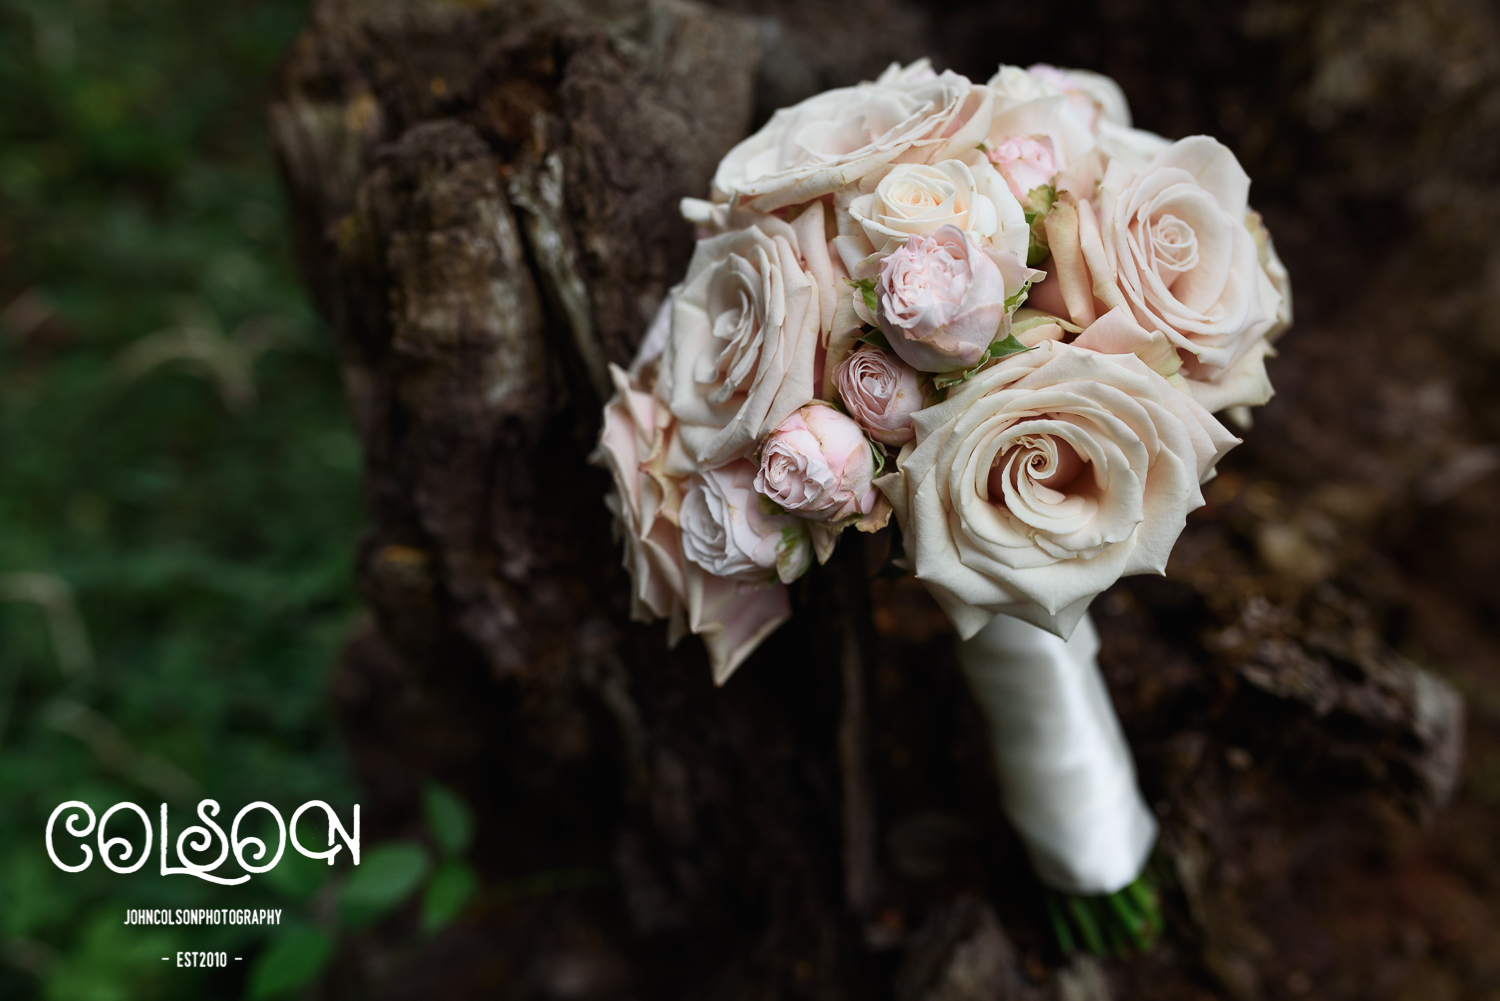 A beautiful wedding bouquet.